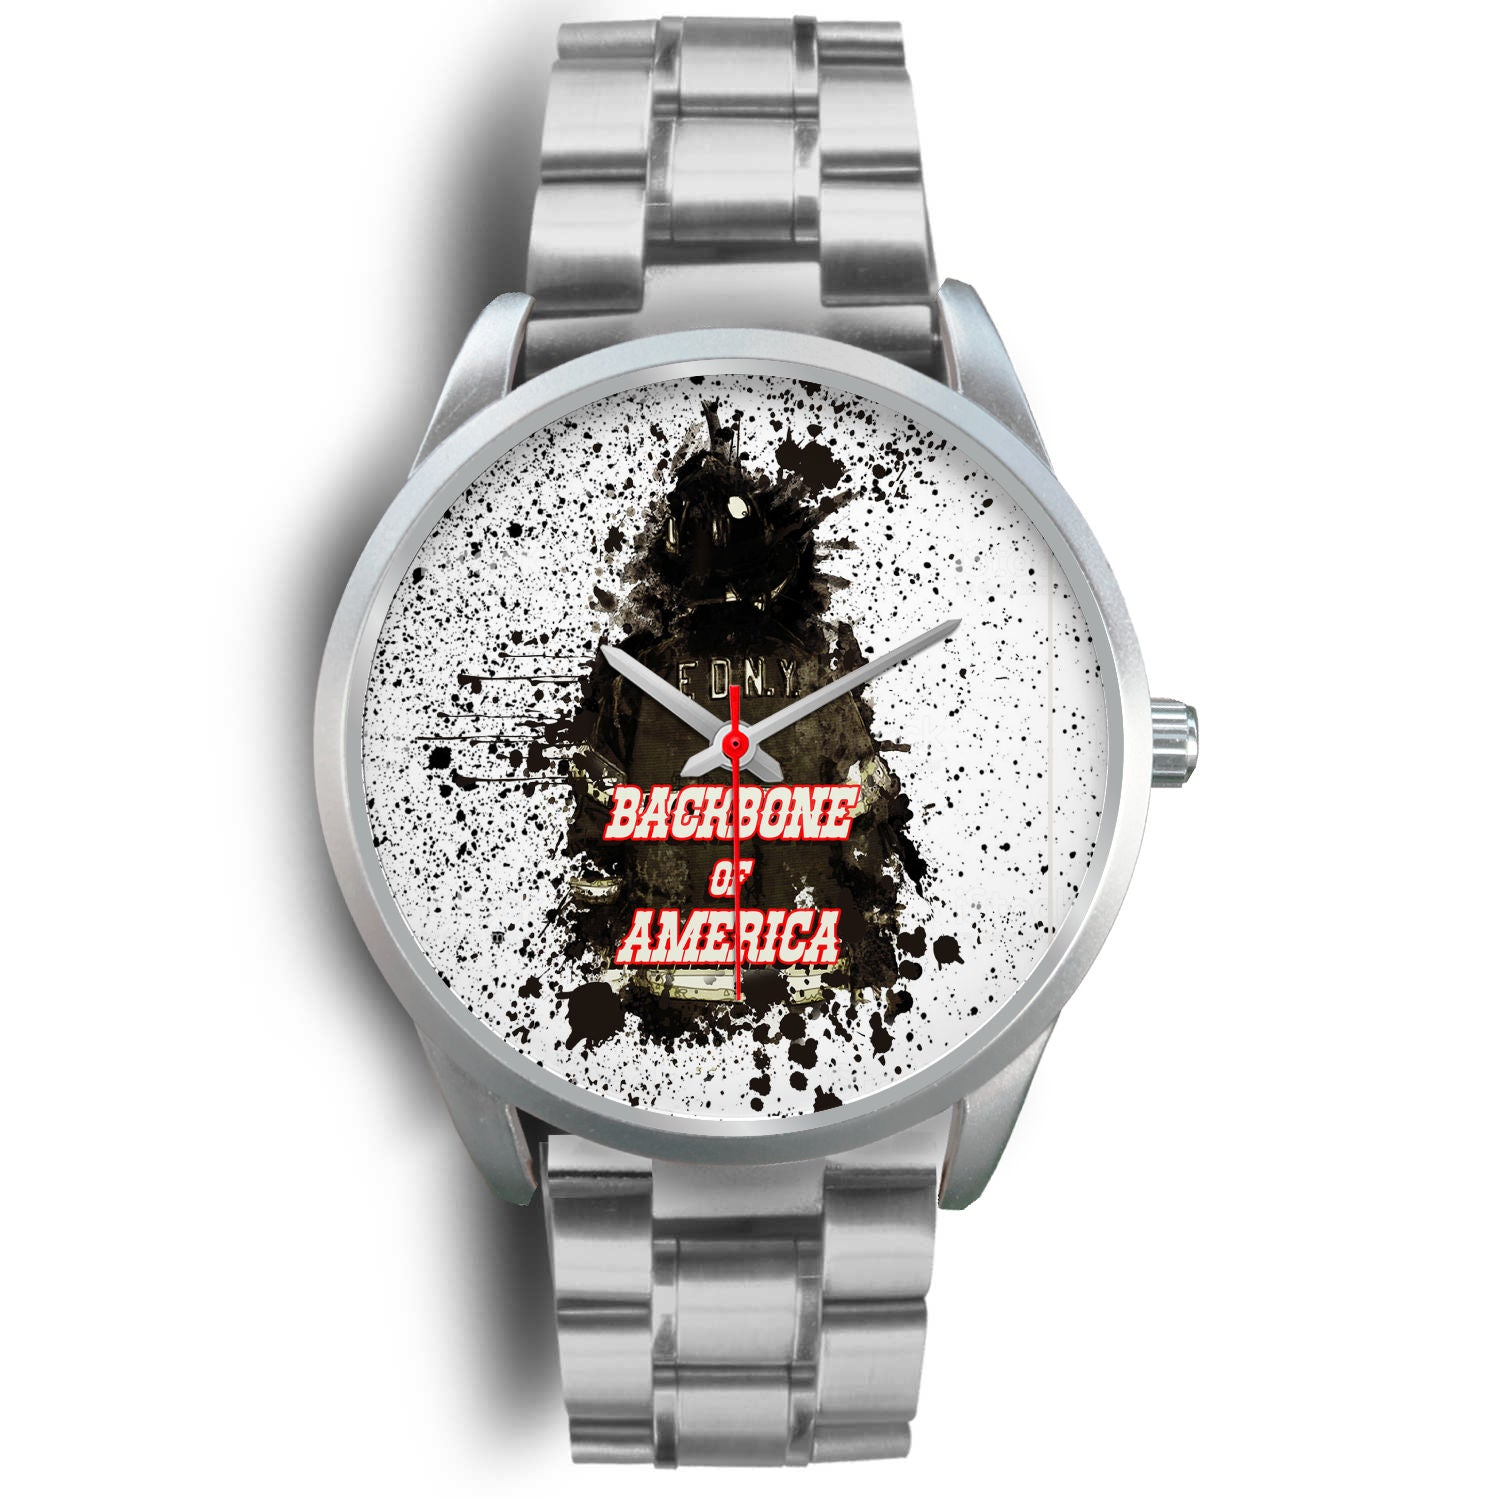 VIRA SILVER STAINLELSS STEEL WATCH FOR AMERICA FIREFIGHTER LOVERS